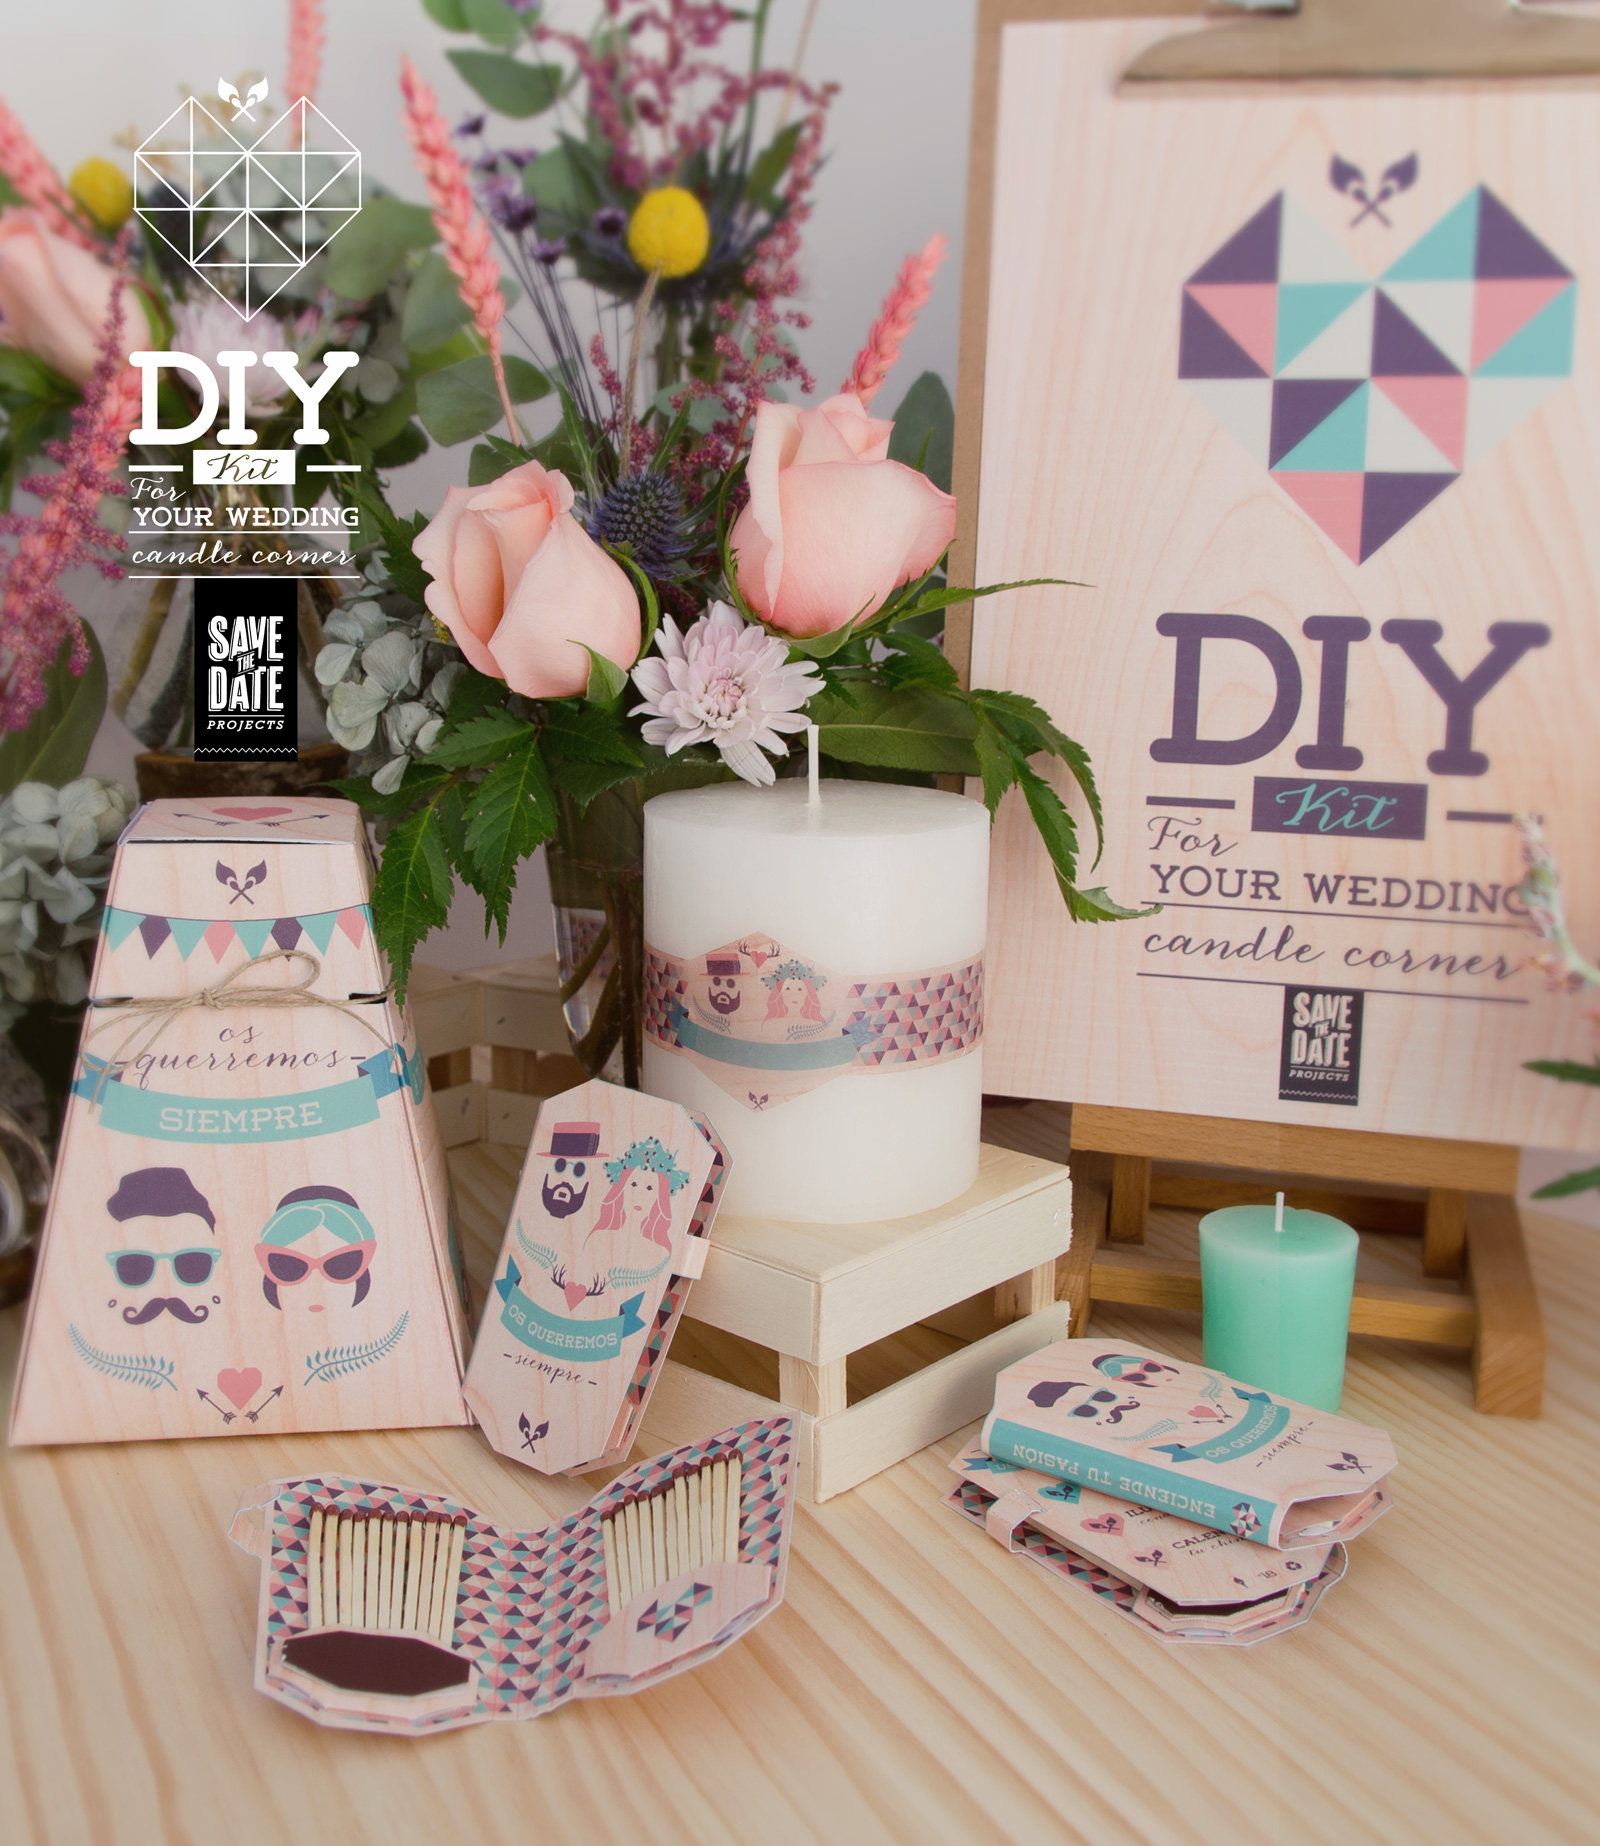 DIY hazlo tú mismo de Save the date projects - velas - cerillas - caja